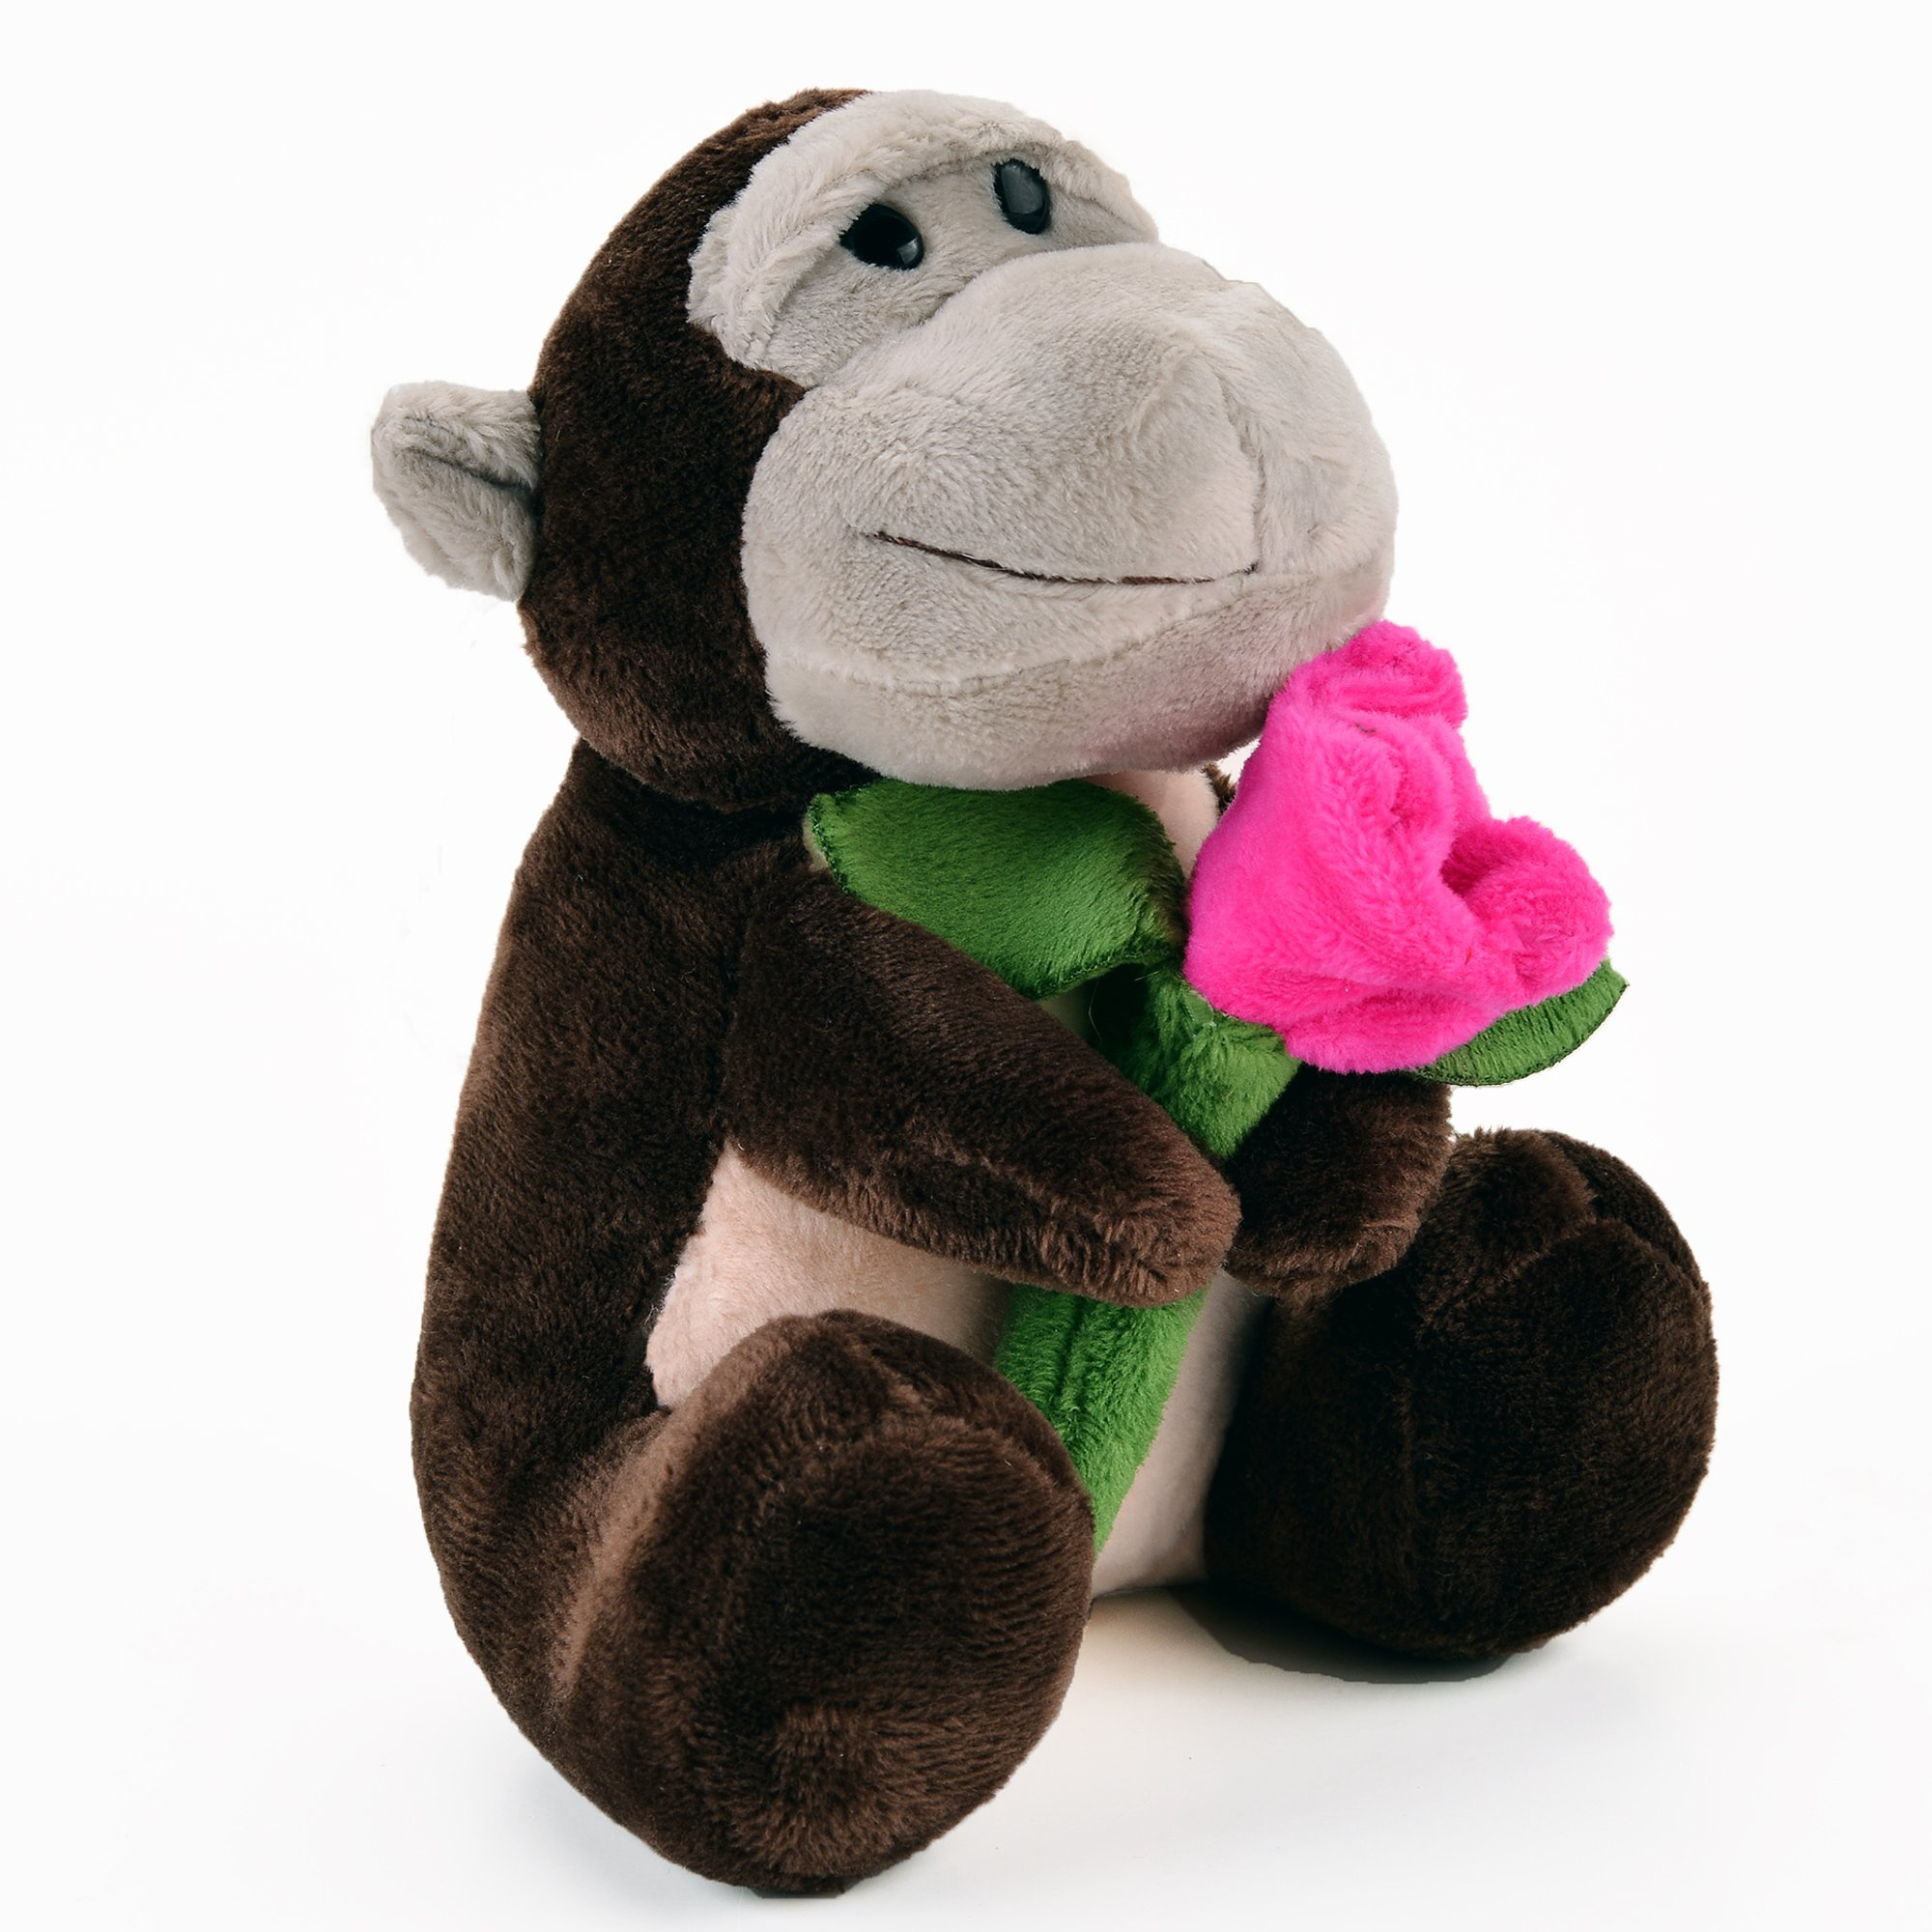 Cheap Stuffed Animal Orangutan Find Stuffed Animal Orangutan Deals